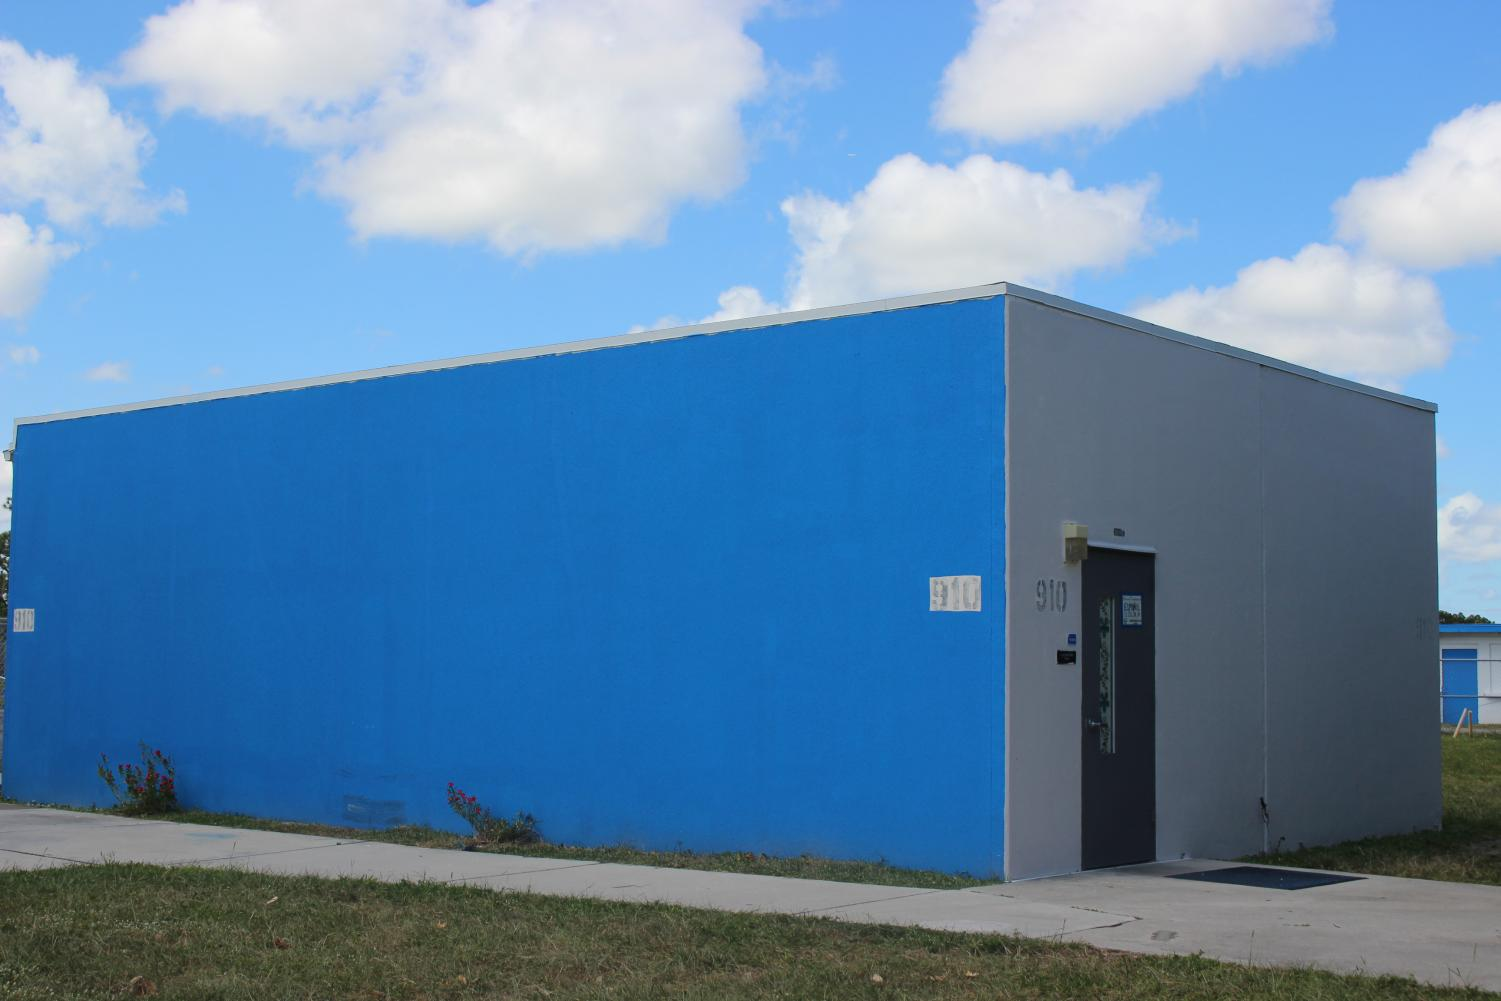 BLUE IT IS: Classroom 910 is one of the campus buildings that have been repainted in the Canes' colors.